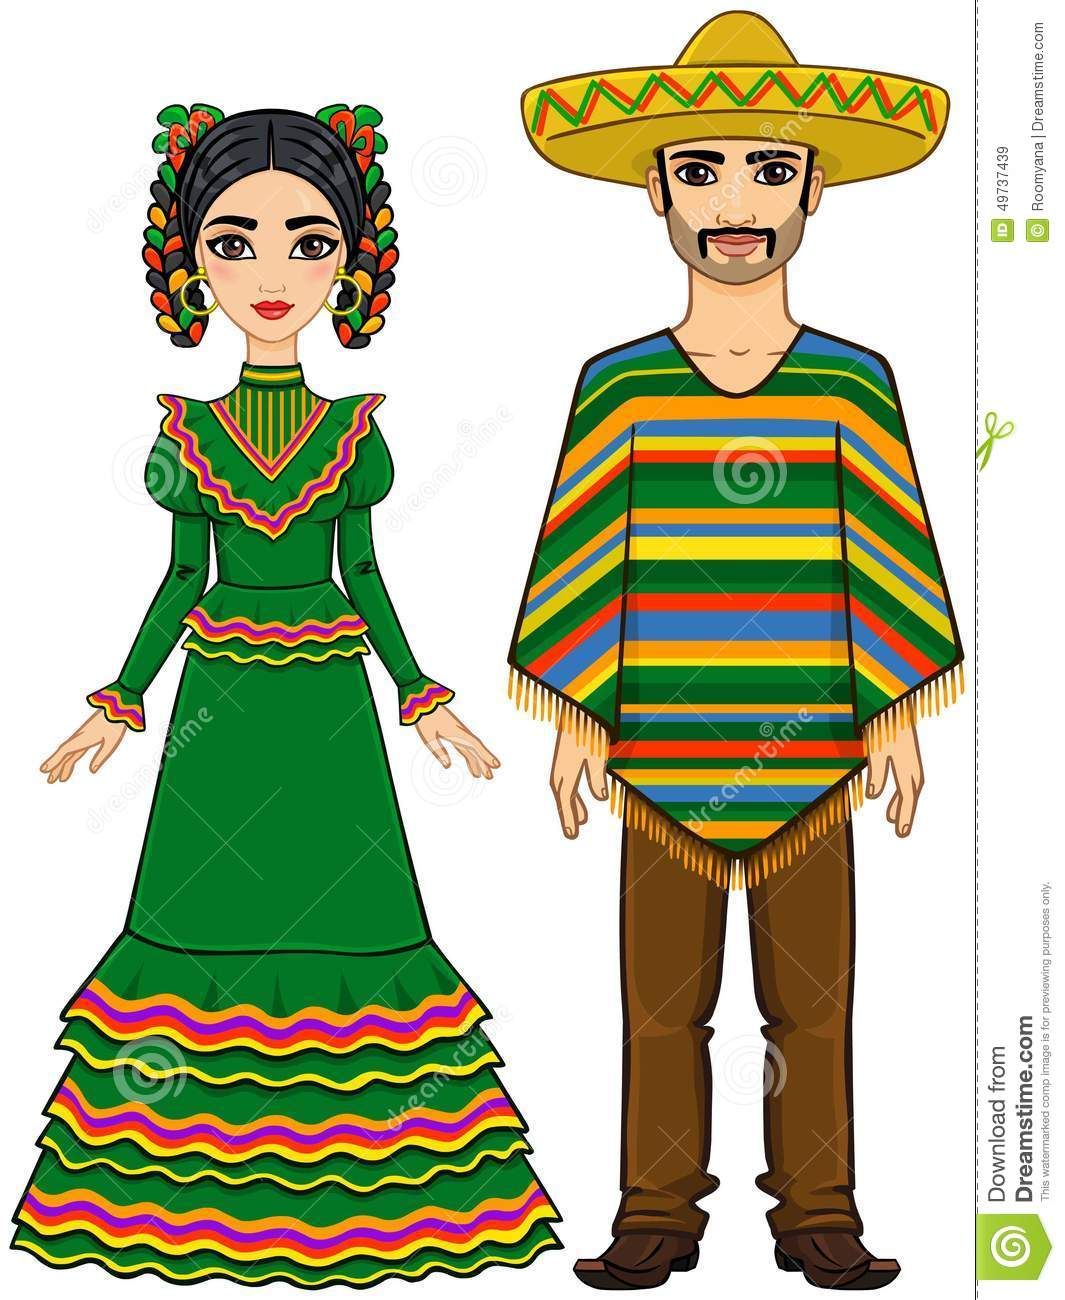 Mexican traditional dress clipart graphic black and white stock Mexican traditional dress clipart - ClipartFest graphic black and white stock